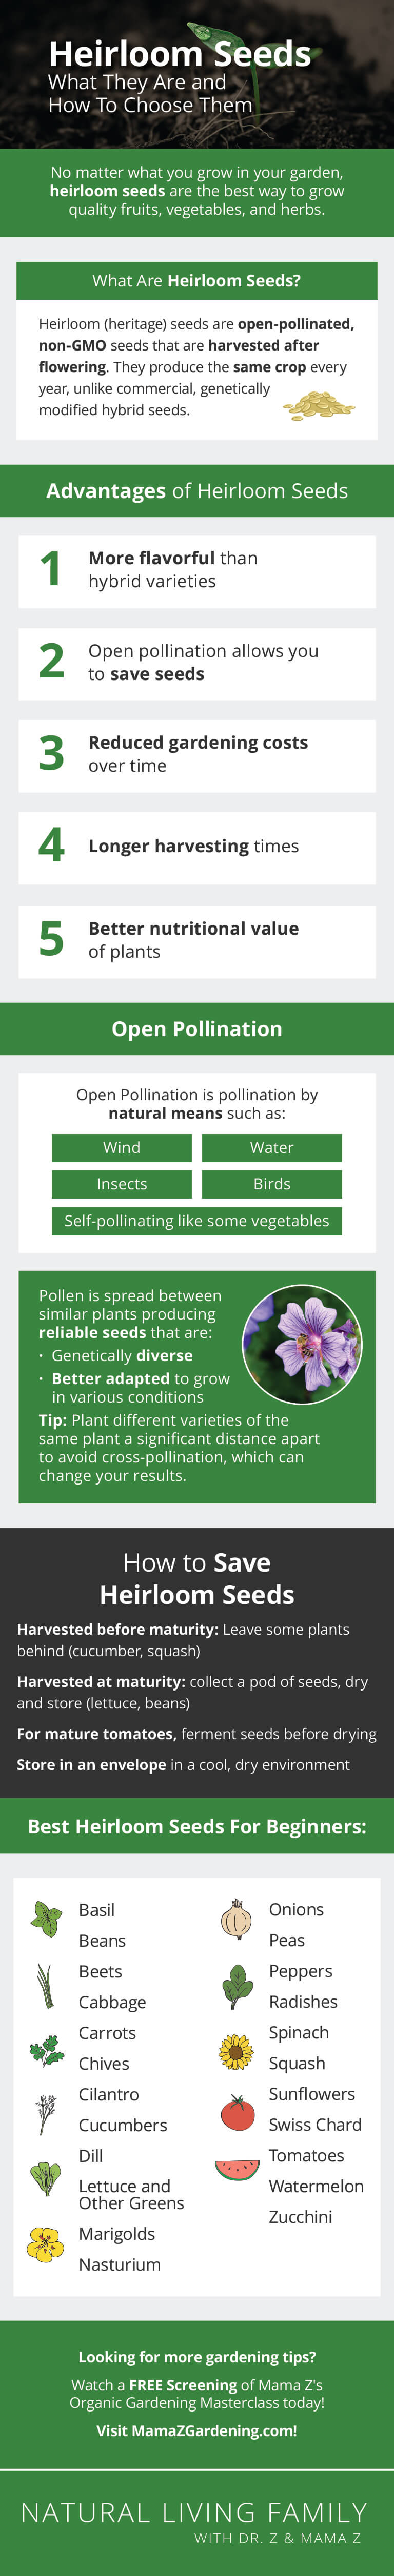 What are Heirloom Seeds? Best Heritage and Organic Garden Seeds Infographic